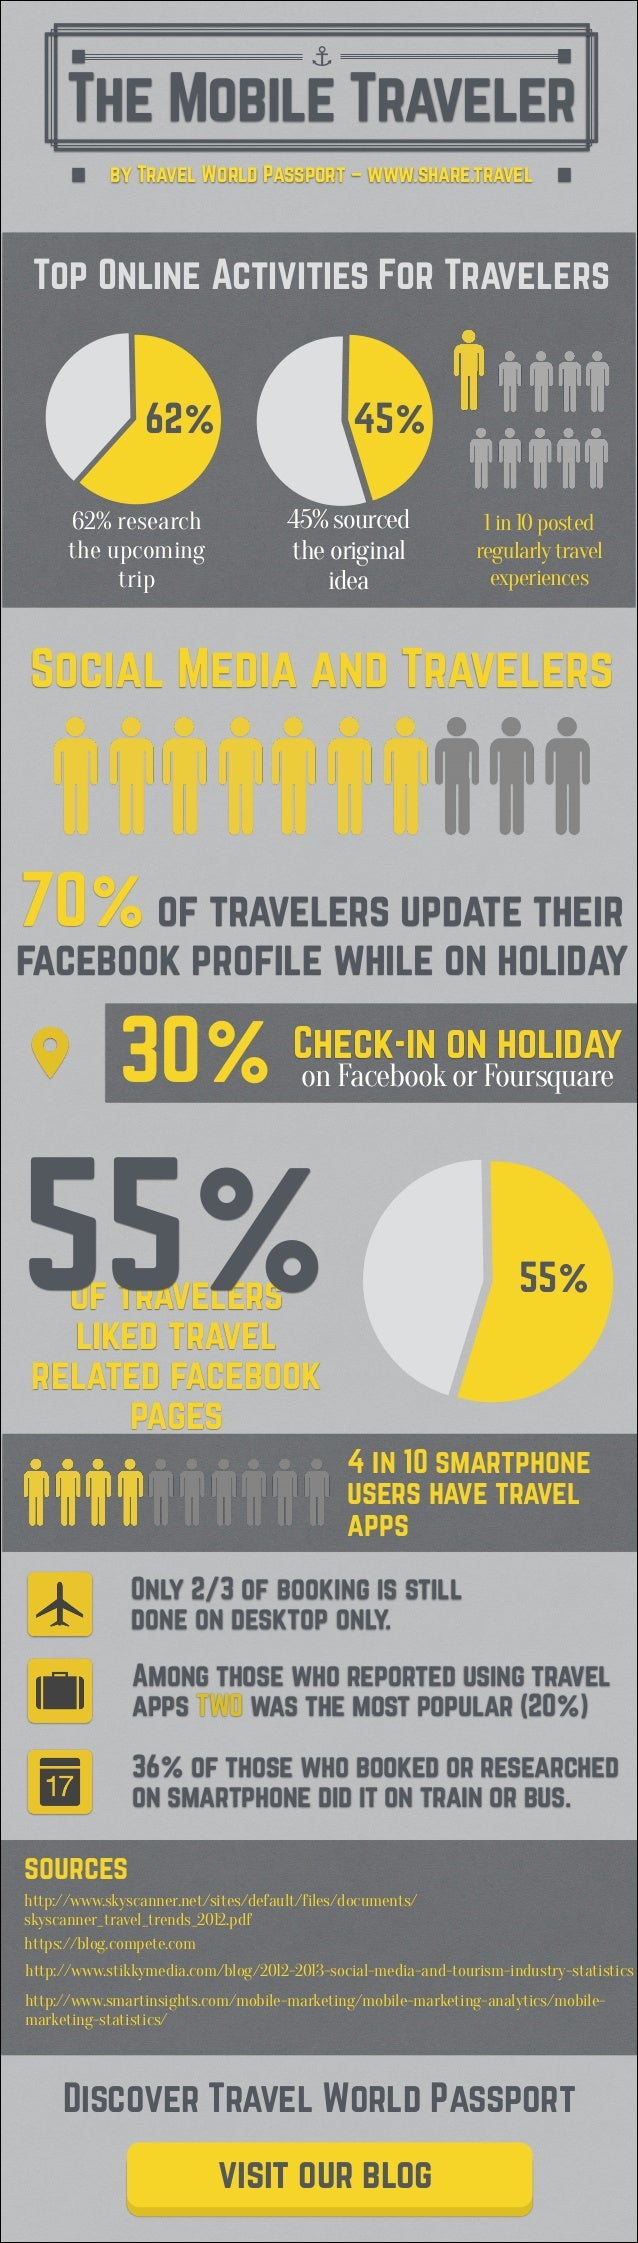 The Mobile Traveler ⚓ by Travel World Passport – www.share.travel Top Online Activities For Travelers 62% 62% research the...